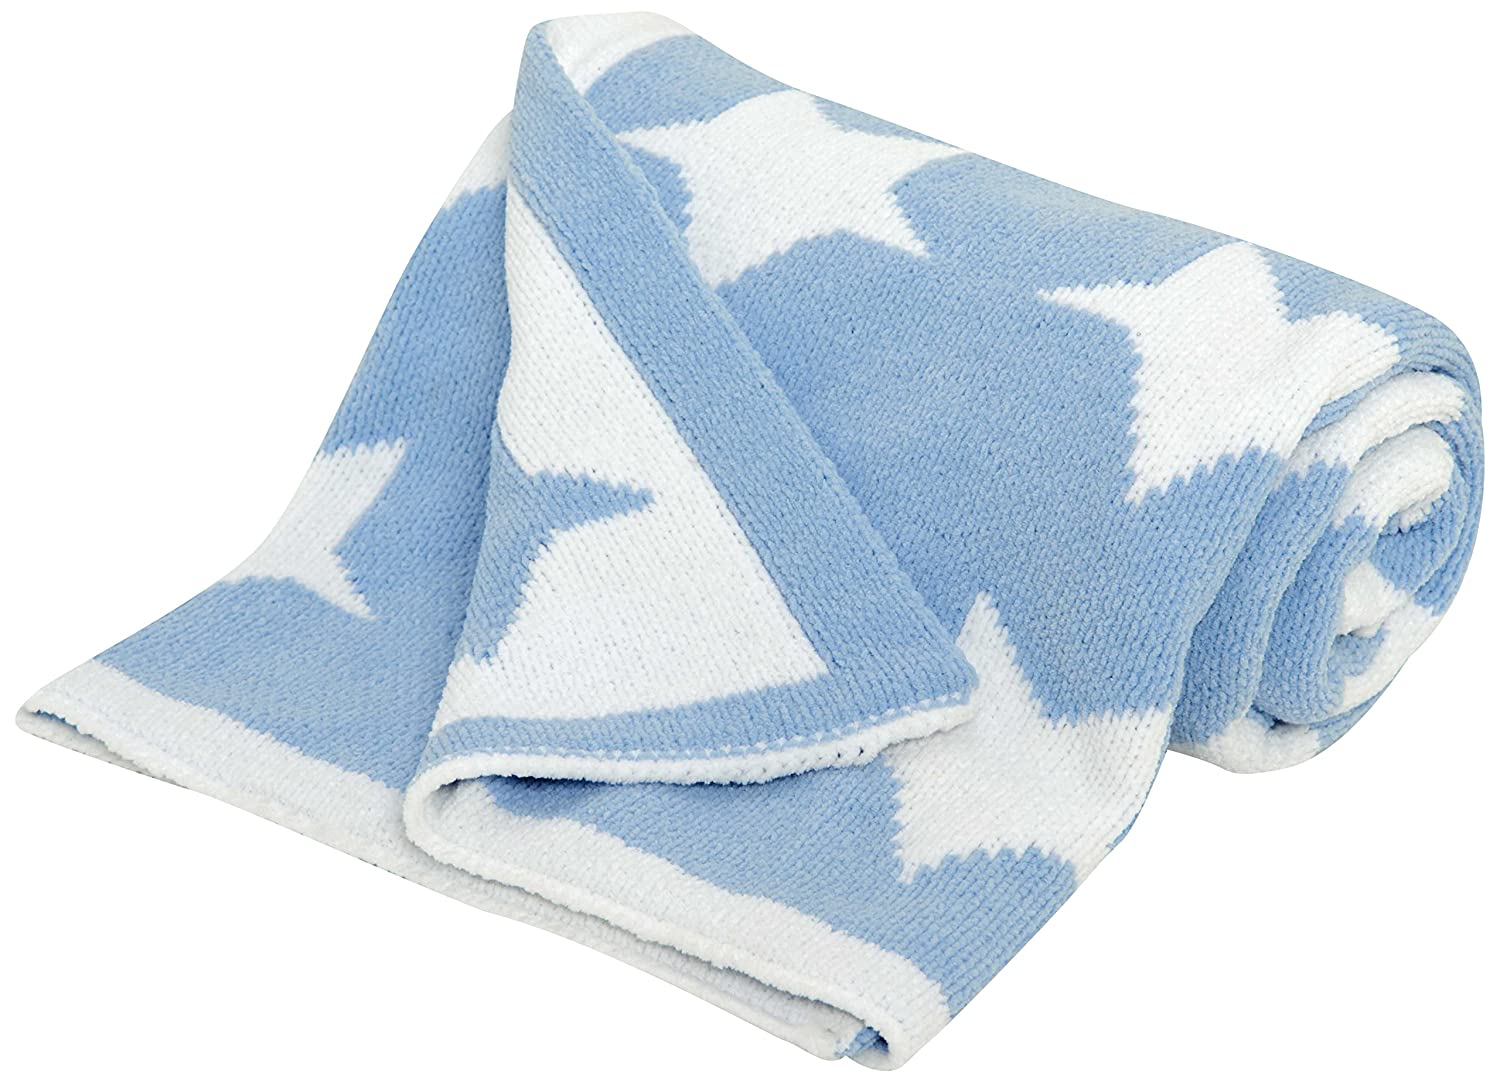 Silvercloud Chenille Blanket, Little Star East Coast Nursery Ltd 8484LS